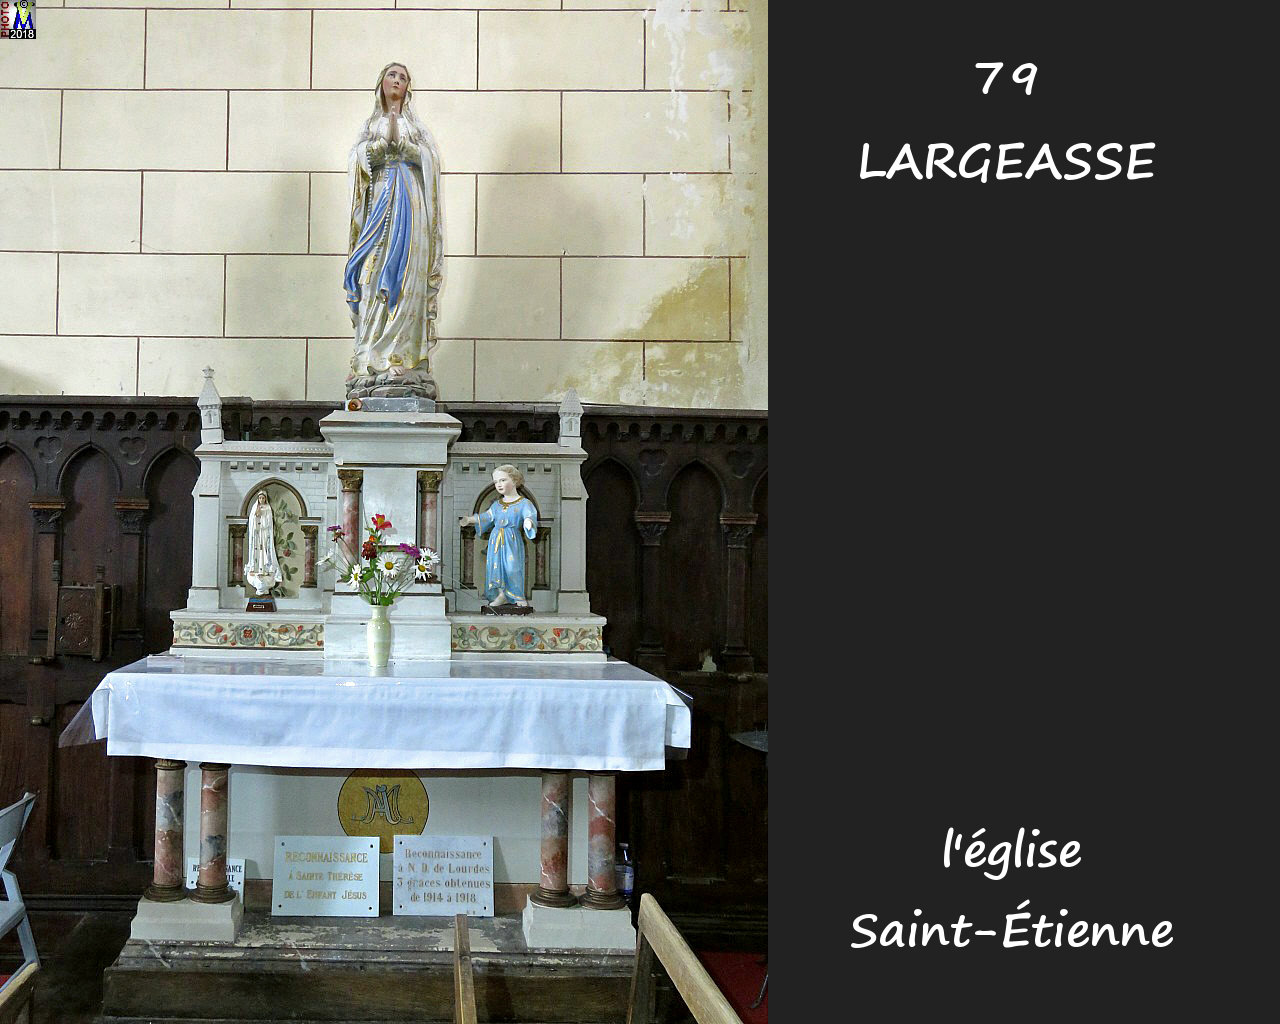 79LARGEASSE_eglise_1114.jpg